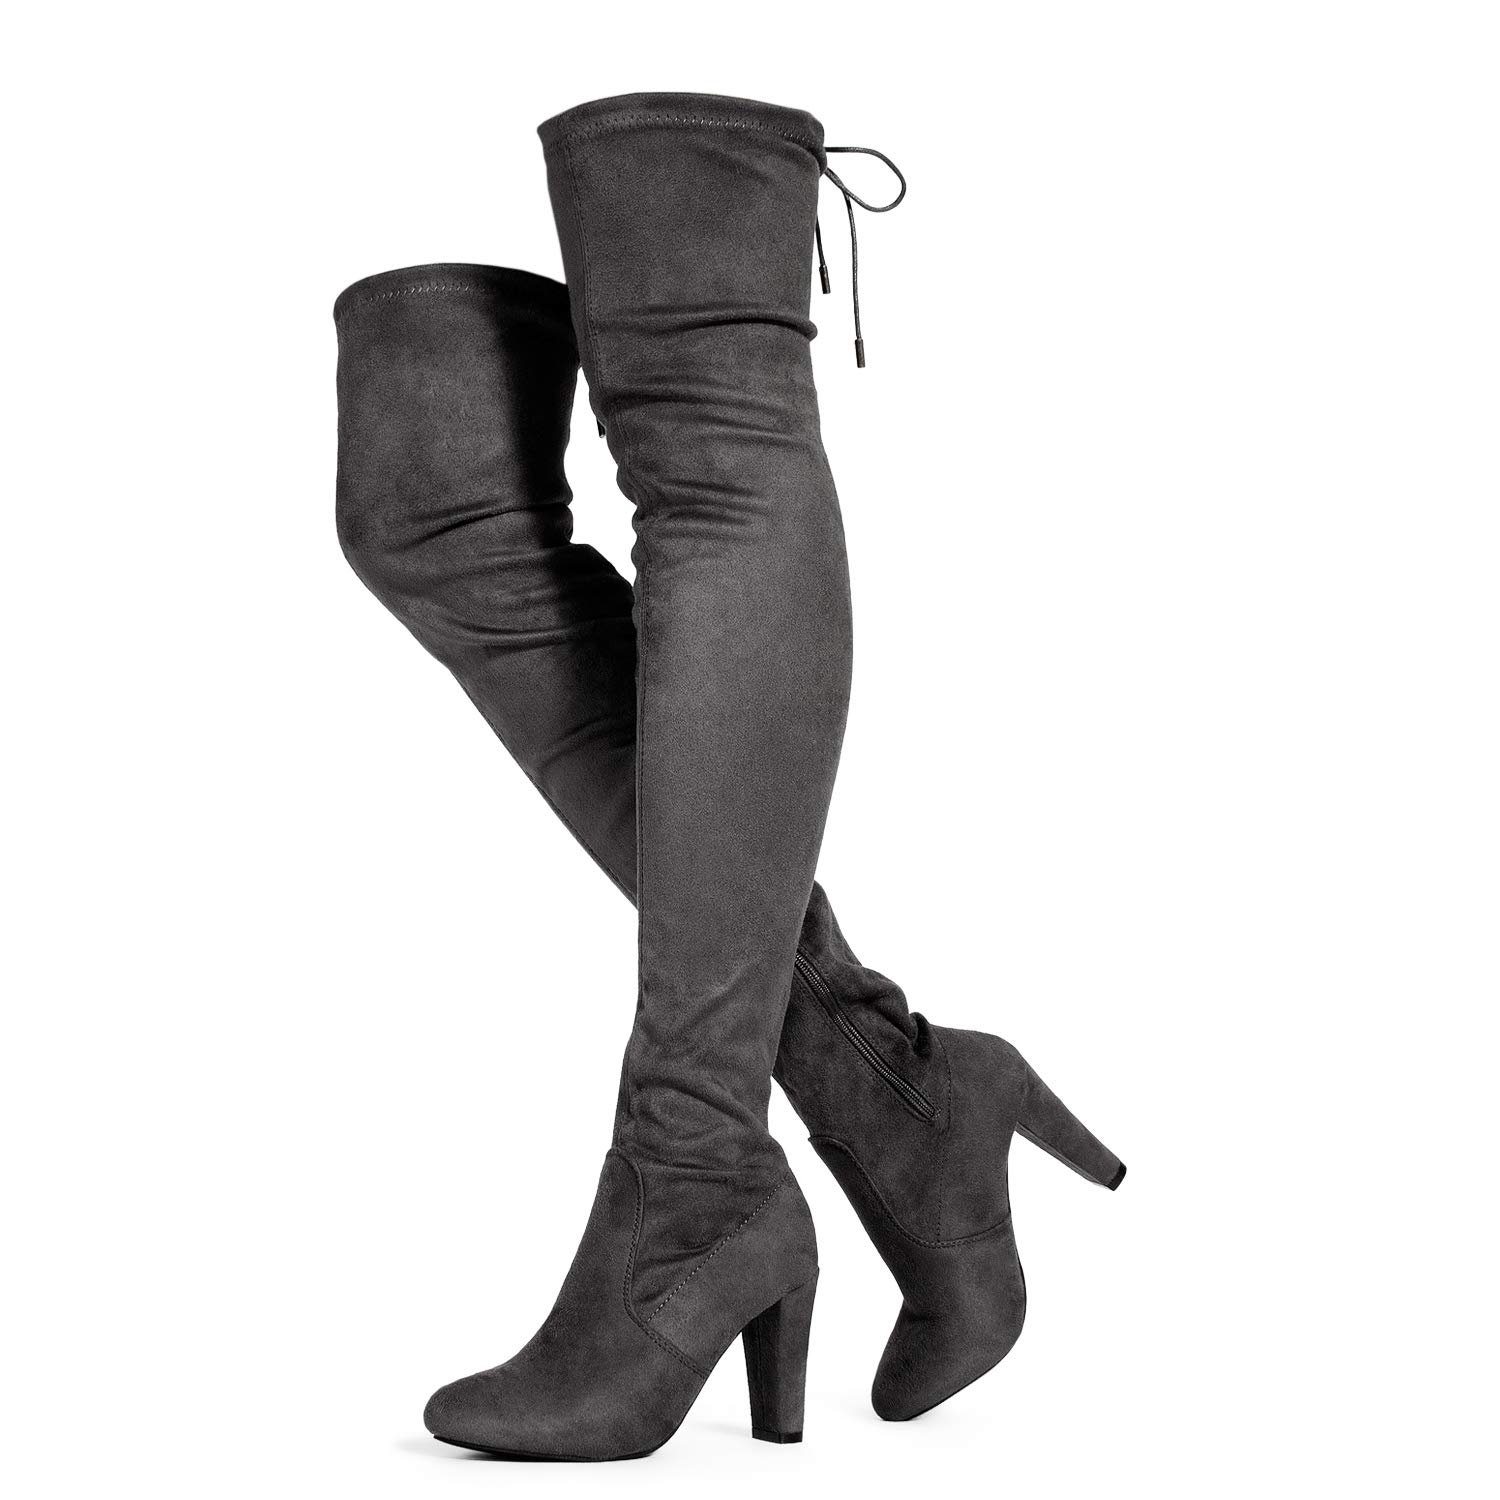 Premium Grey Suede ROF Women's Fashion Comfy Vegan Suede Block Heel Side Zipper Thigh High Over The Knee Boots